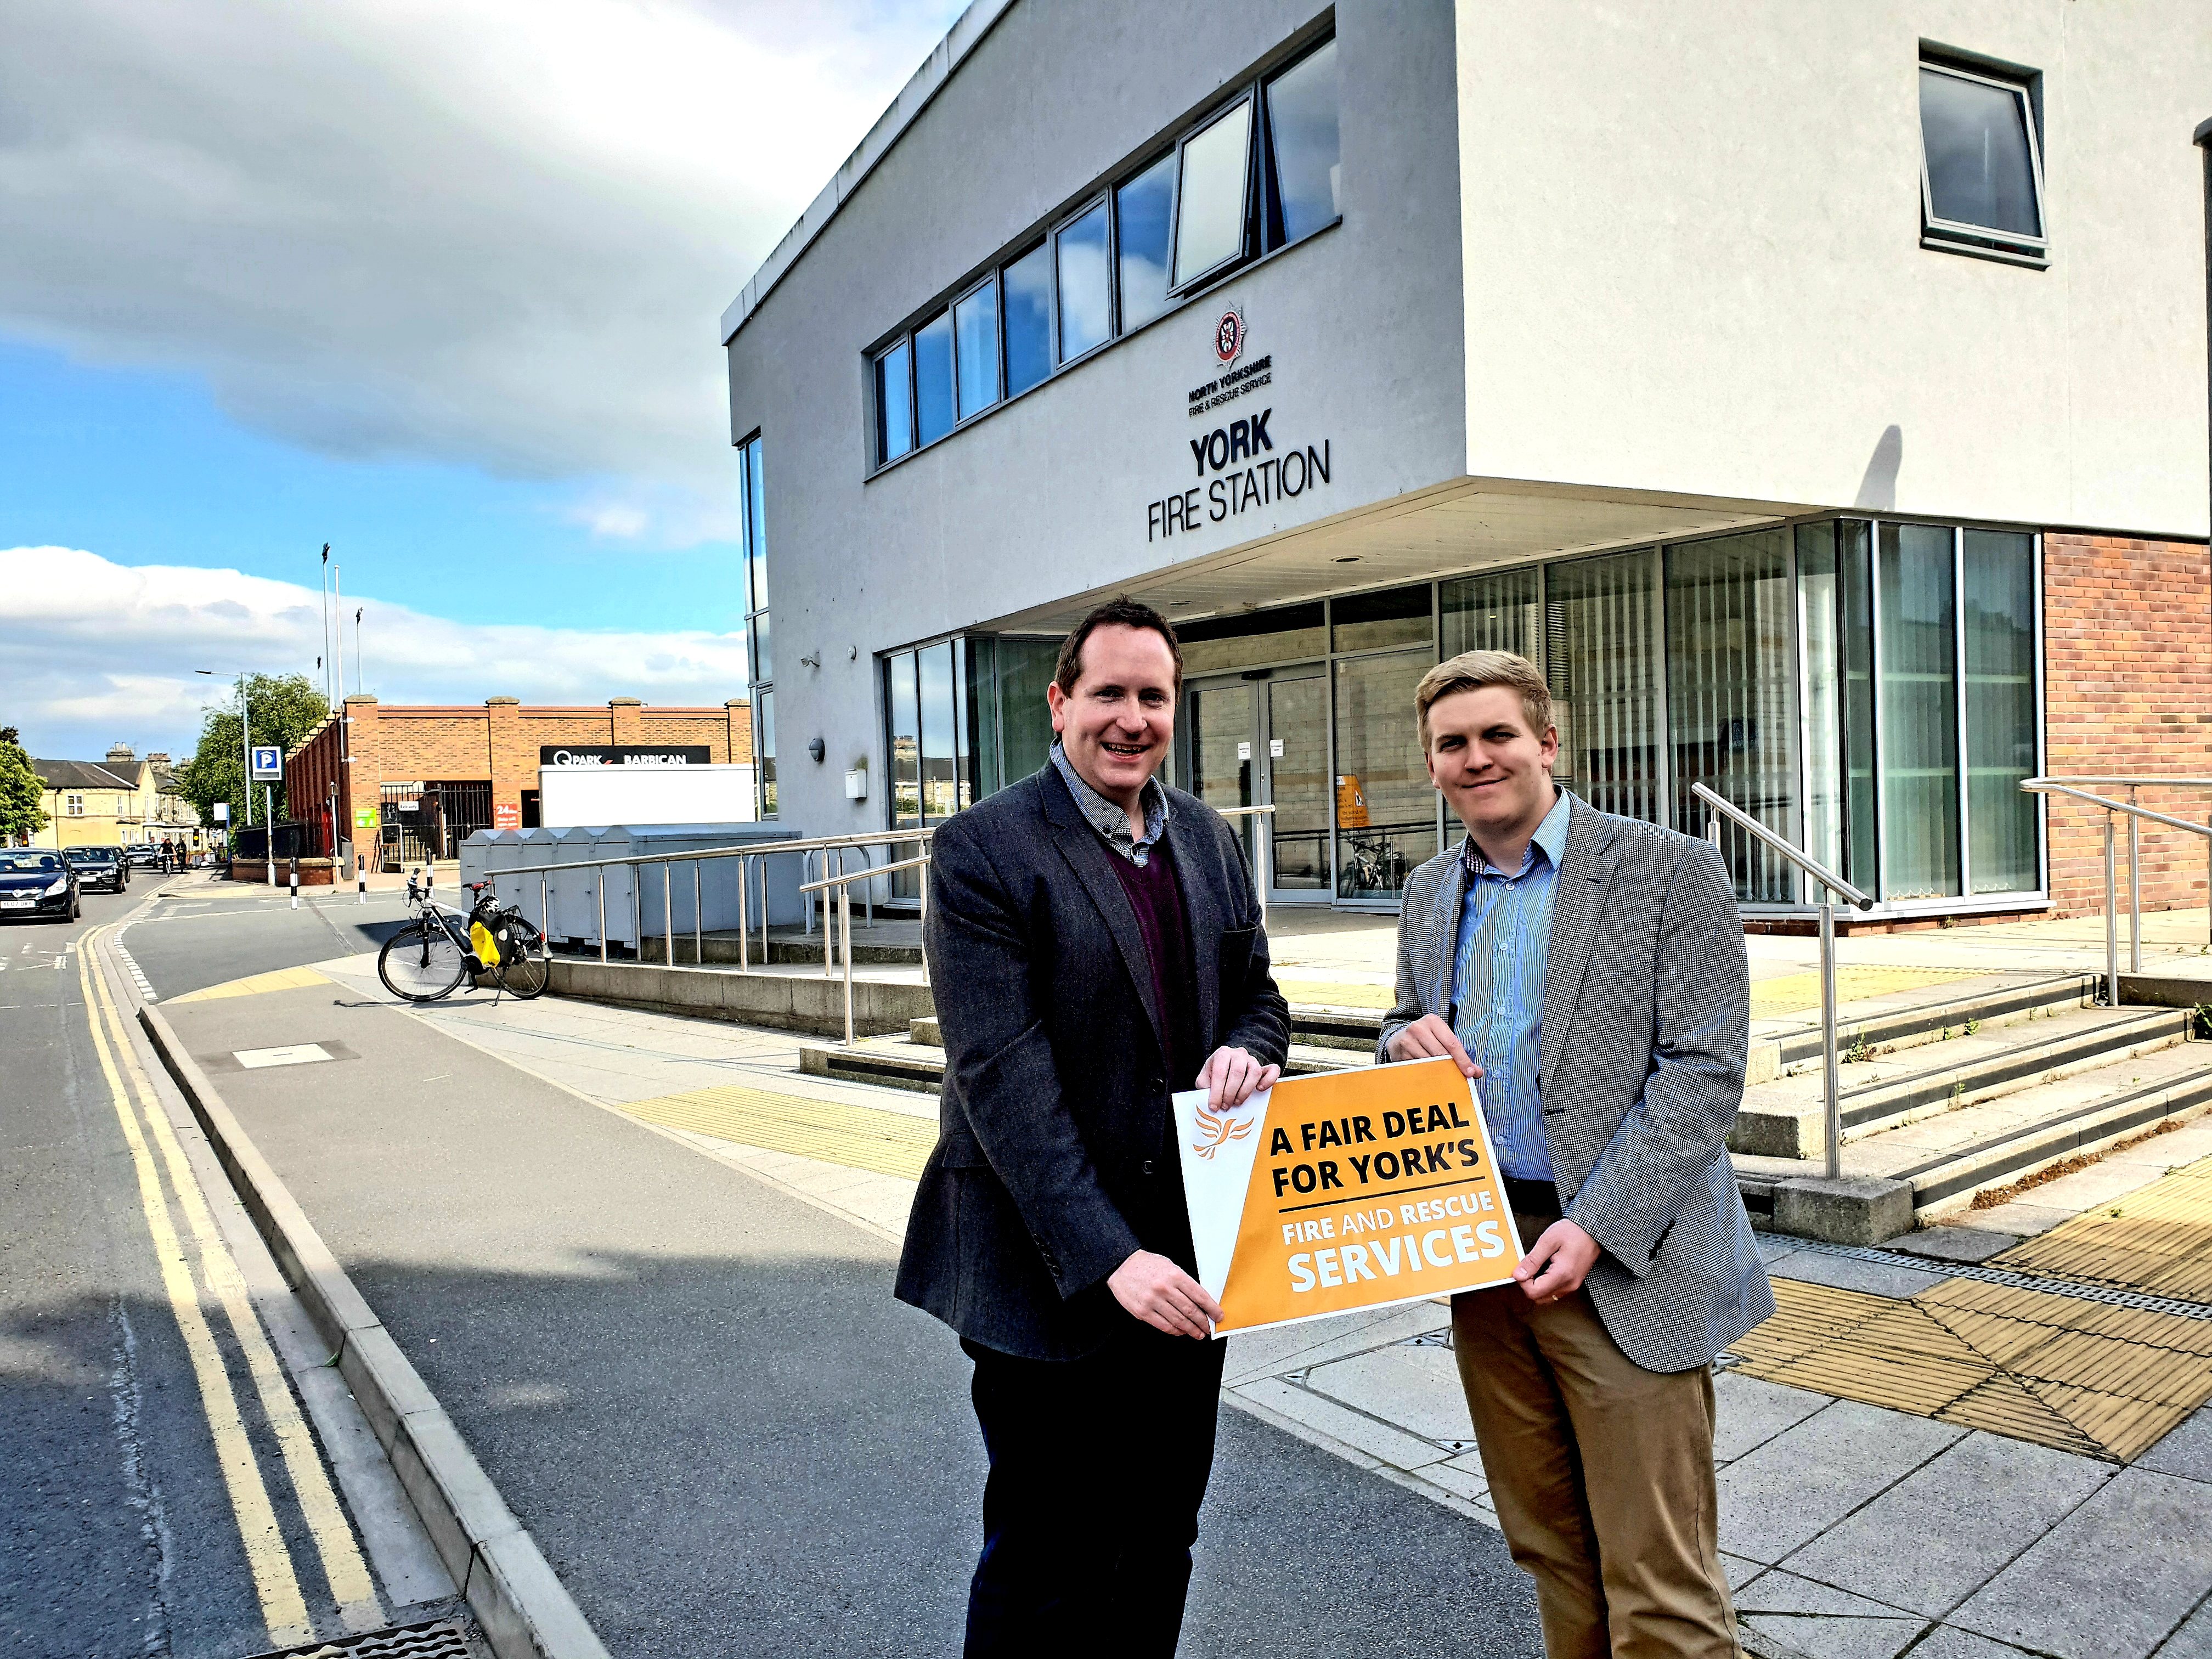 Liberal Democrats seek commitments on York's Police and Fire & Rescue Services